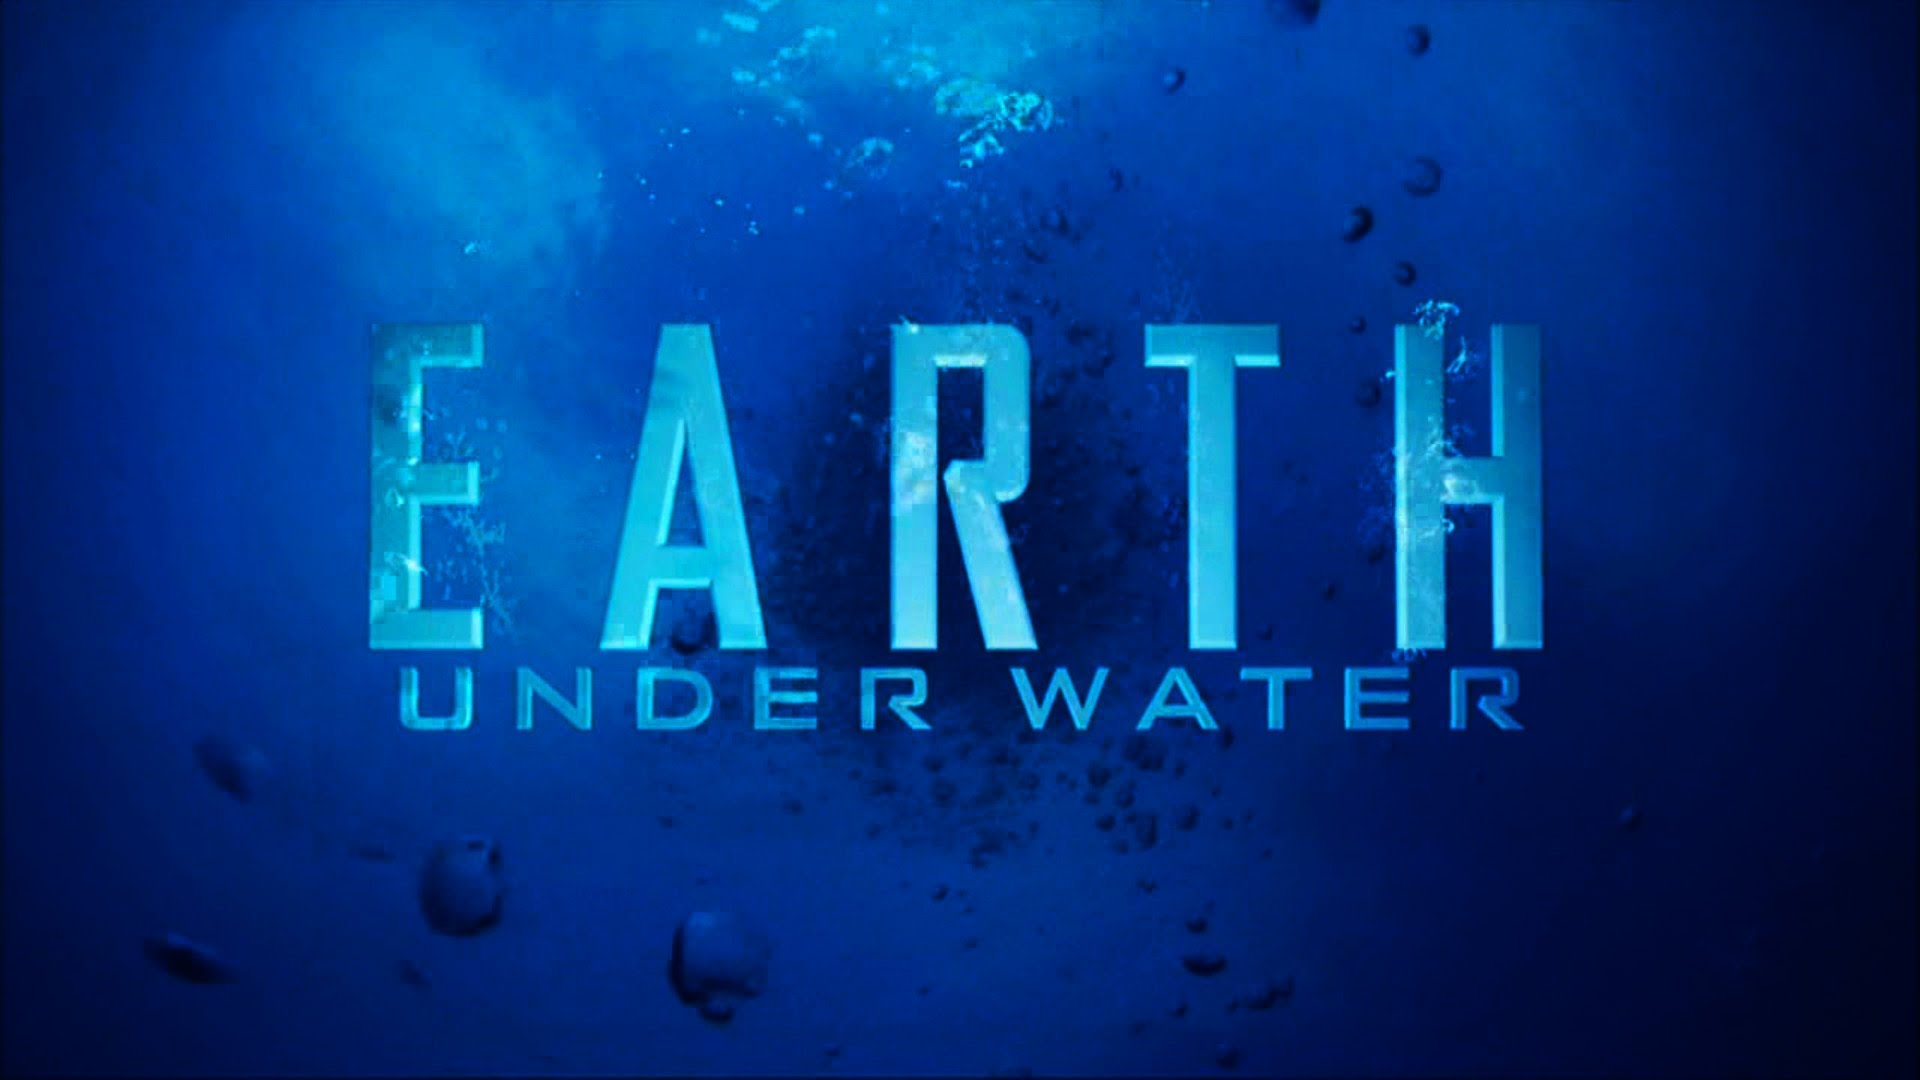 Earth Under Water - Worldwide Flooding - Global Warming - National Geographic Documentary